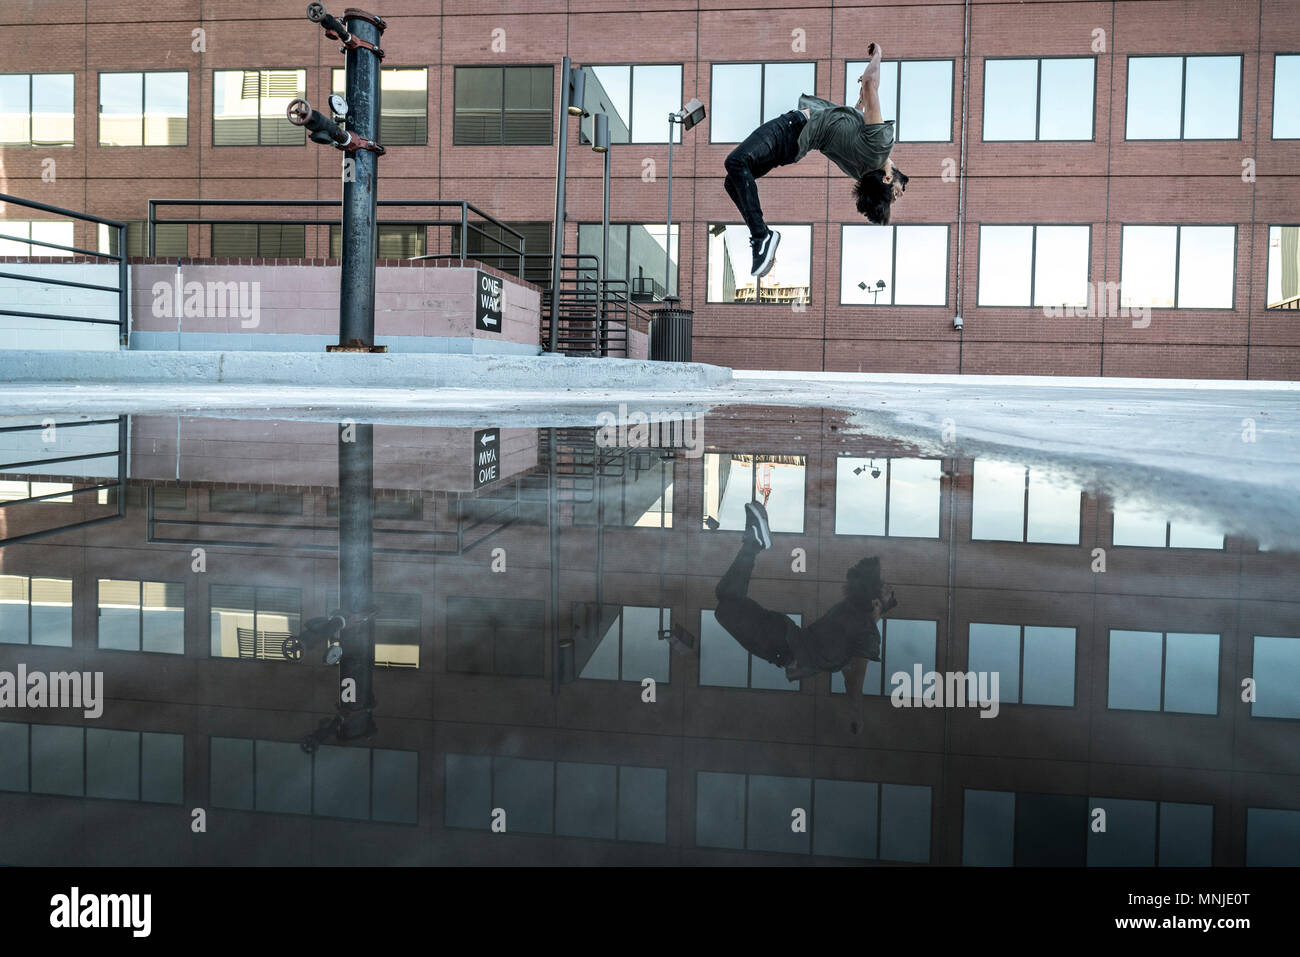 Park athlete in mid back flip in parking lot in downtown Denver, Colorado, USA - Stock Image